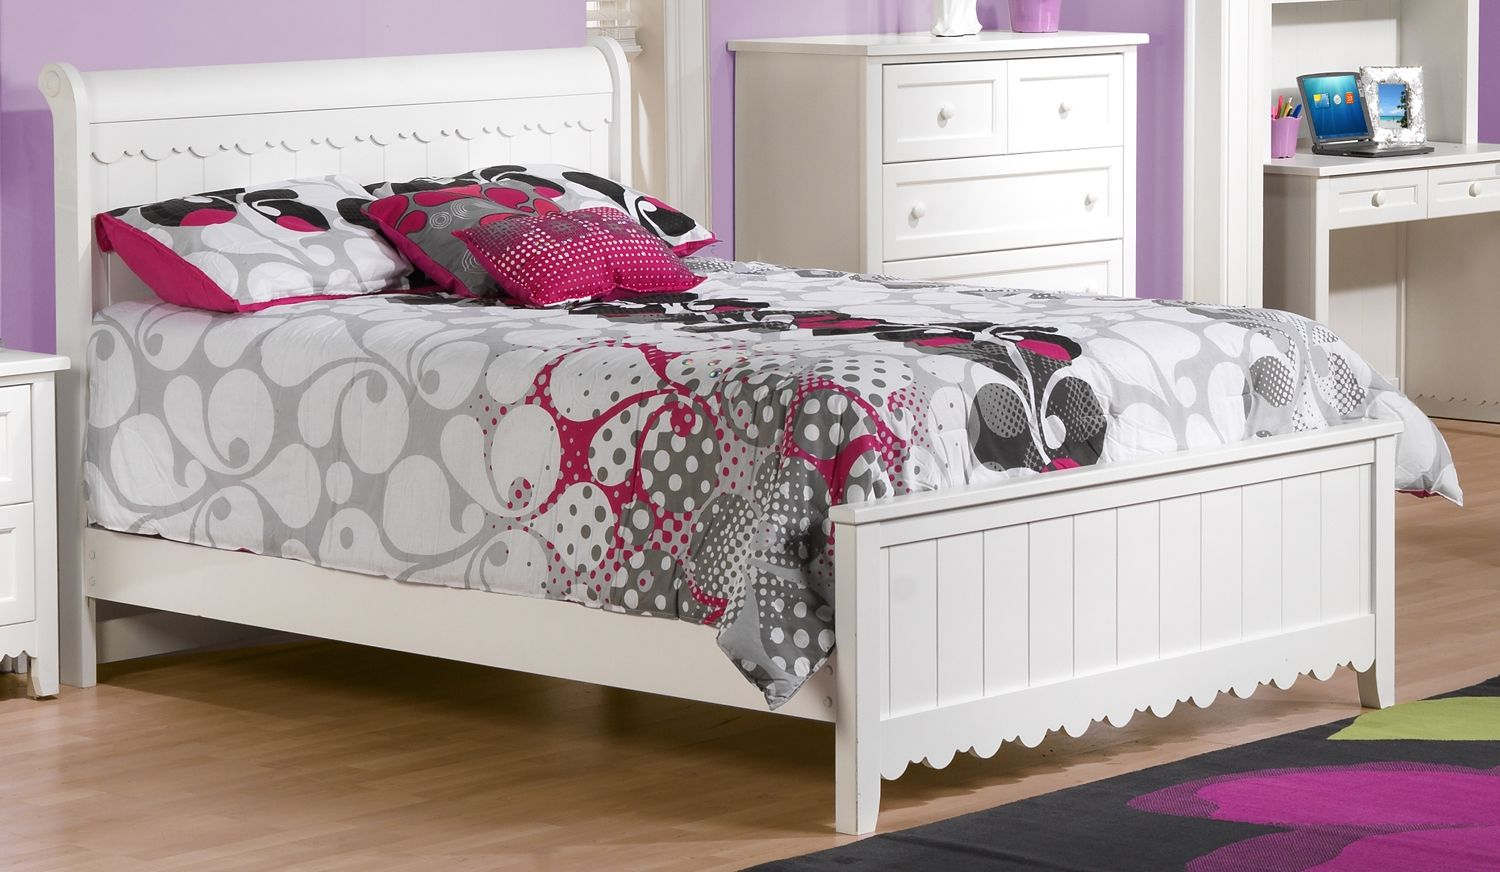 Sweetdreams Kids Furniture Twin Bed Leon's (With images